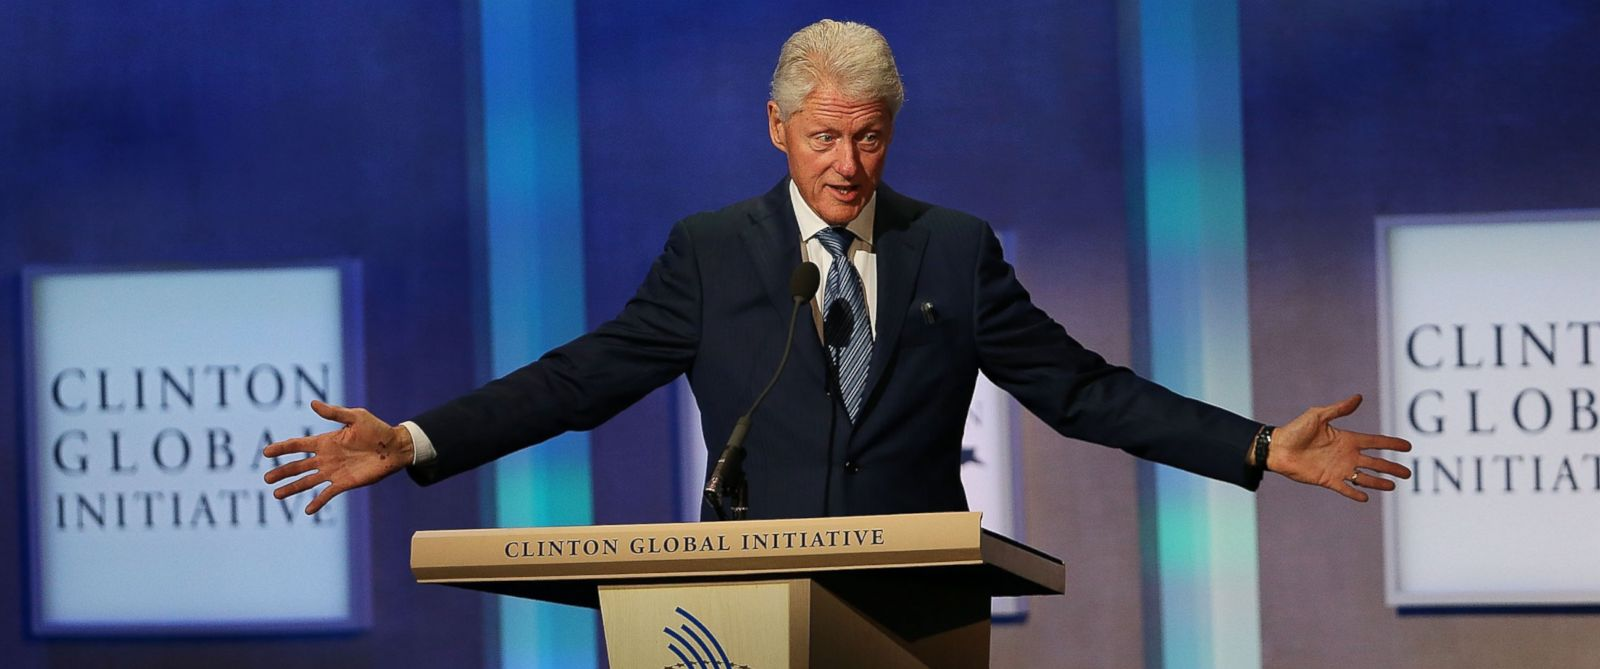 PHOTO: Former U.S. President Bill Clinton opens the annual Clinton Global Initiative (CGI) meeting on September 27, 2015 in New York City.